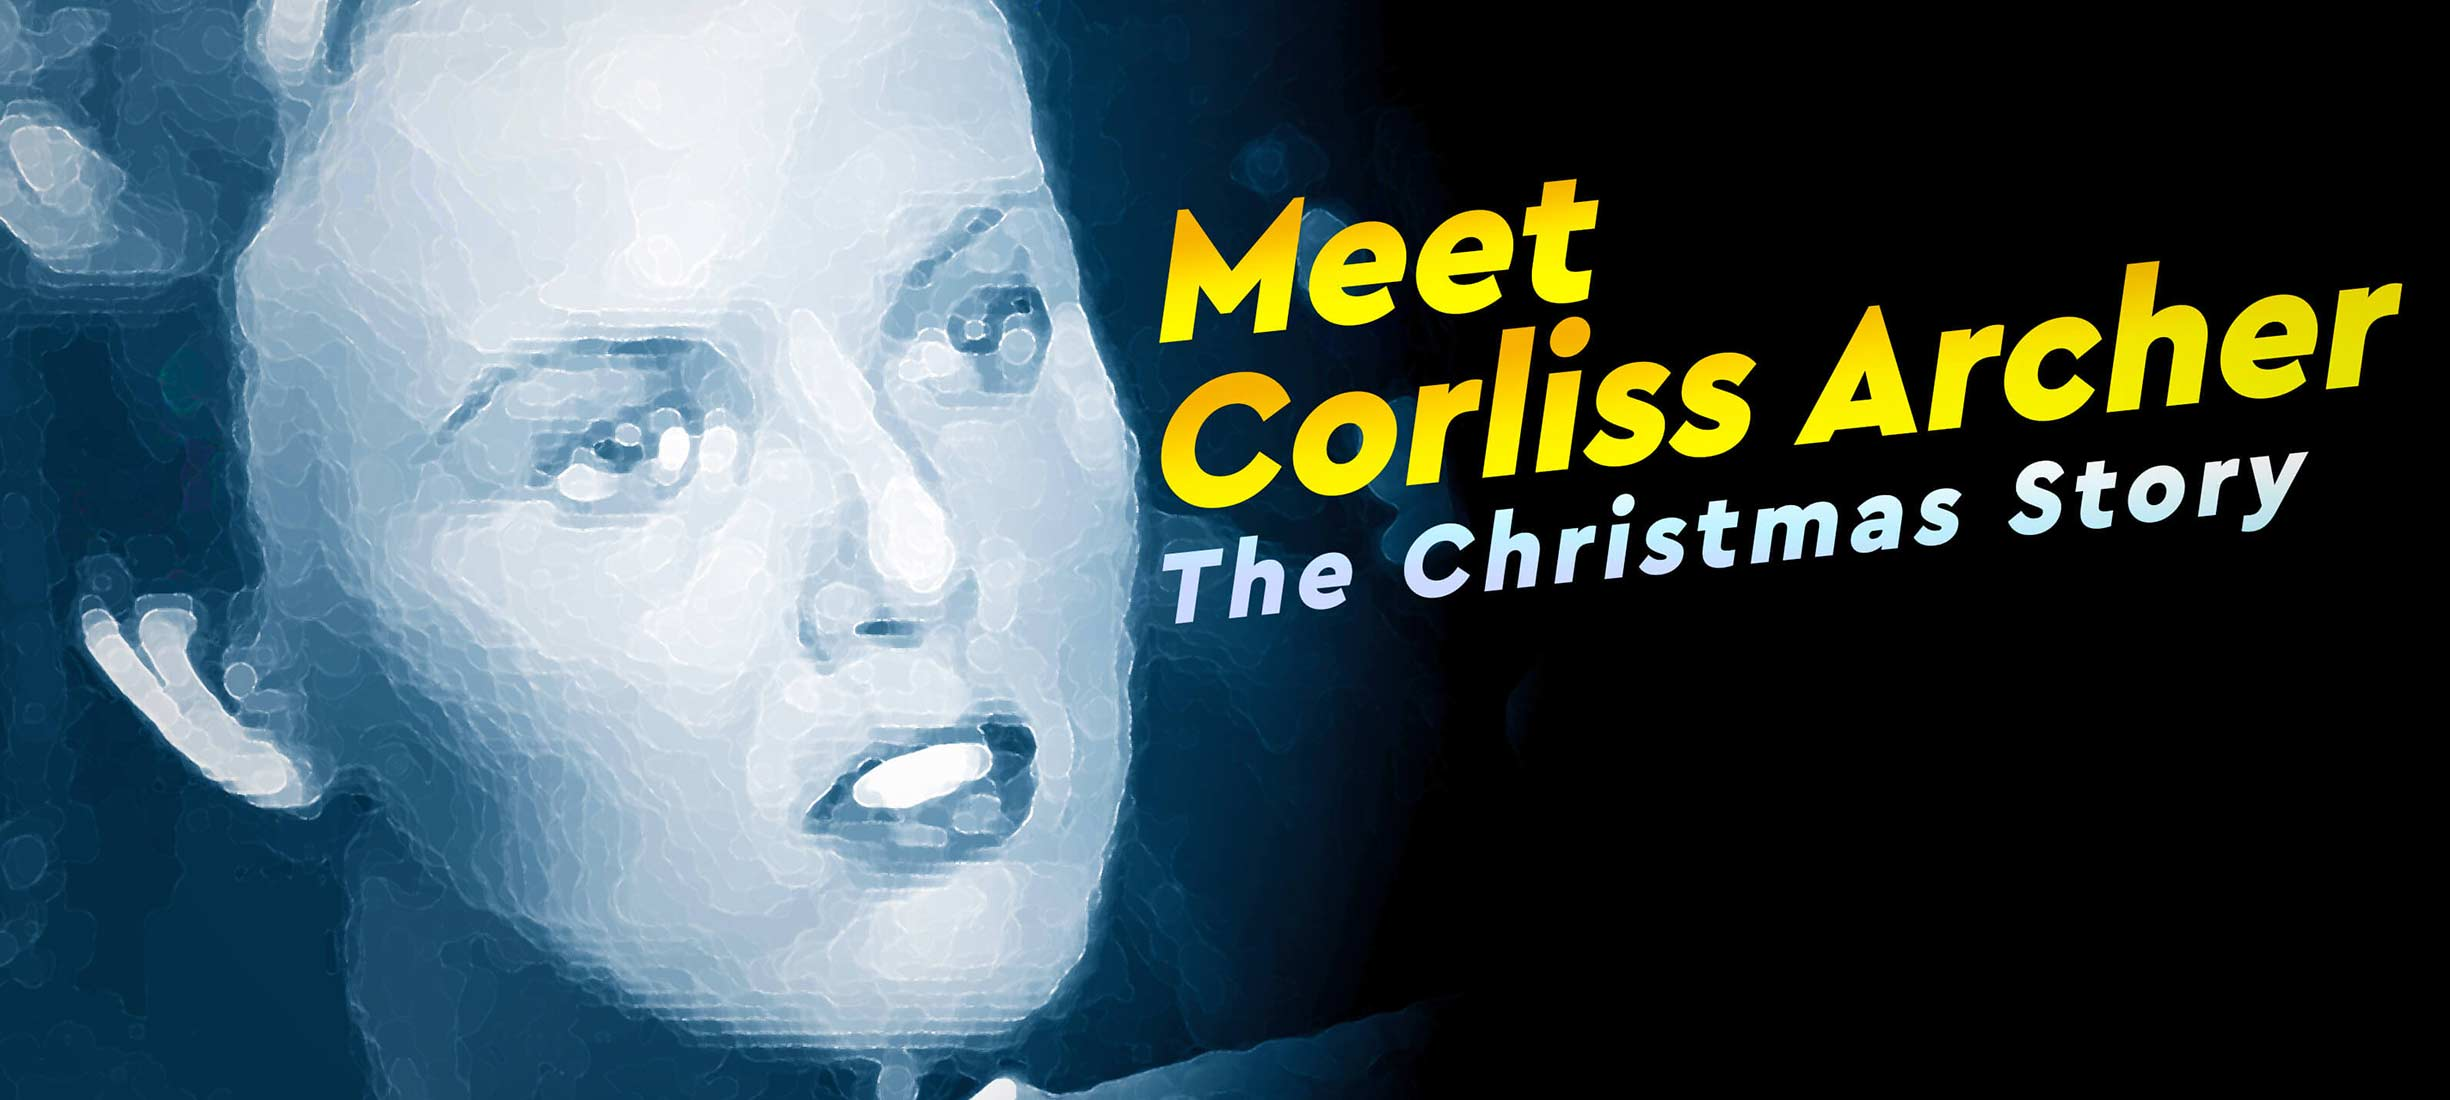 meet corliss archer the christmas story - A Christmas Story Watch Online